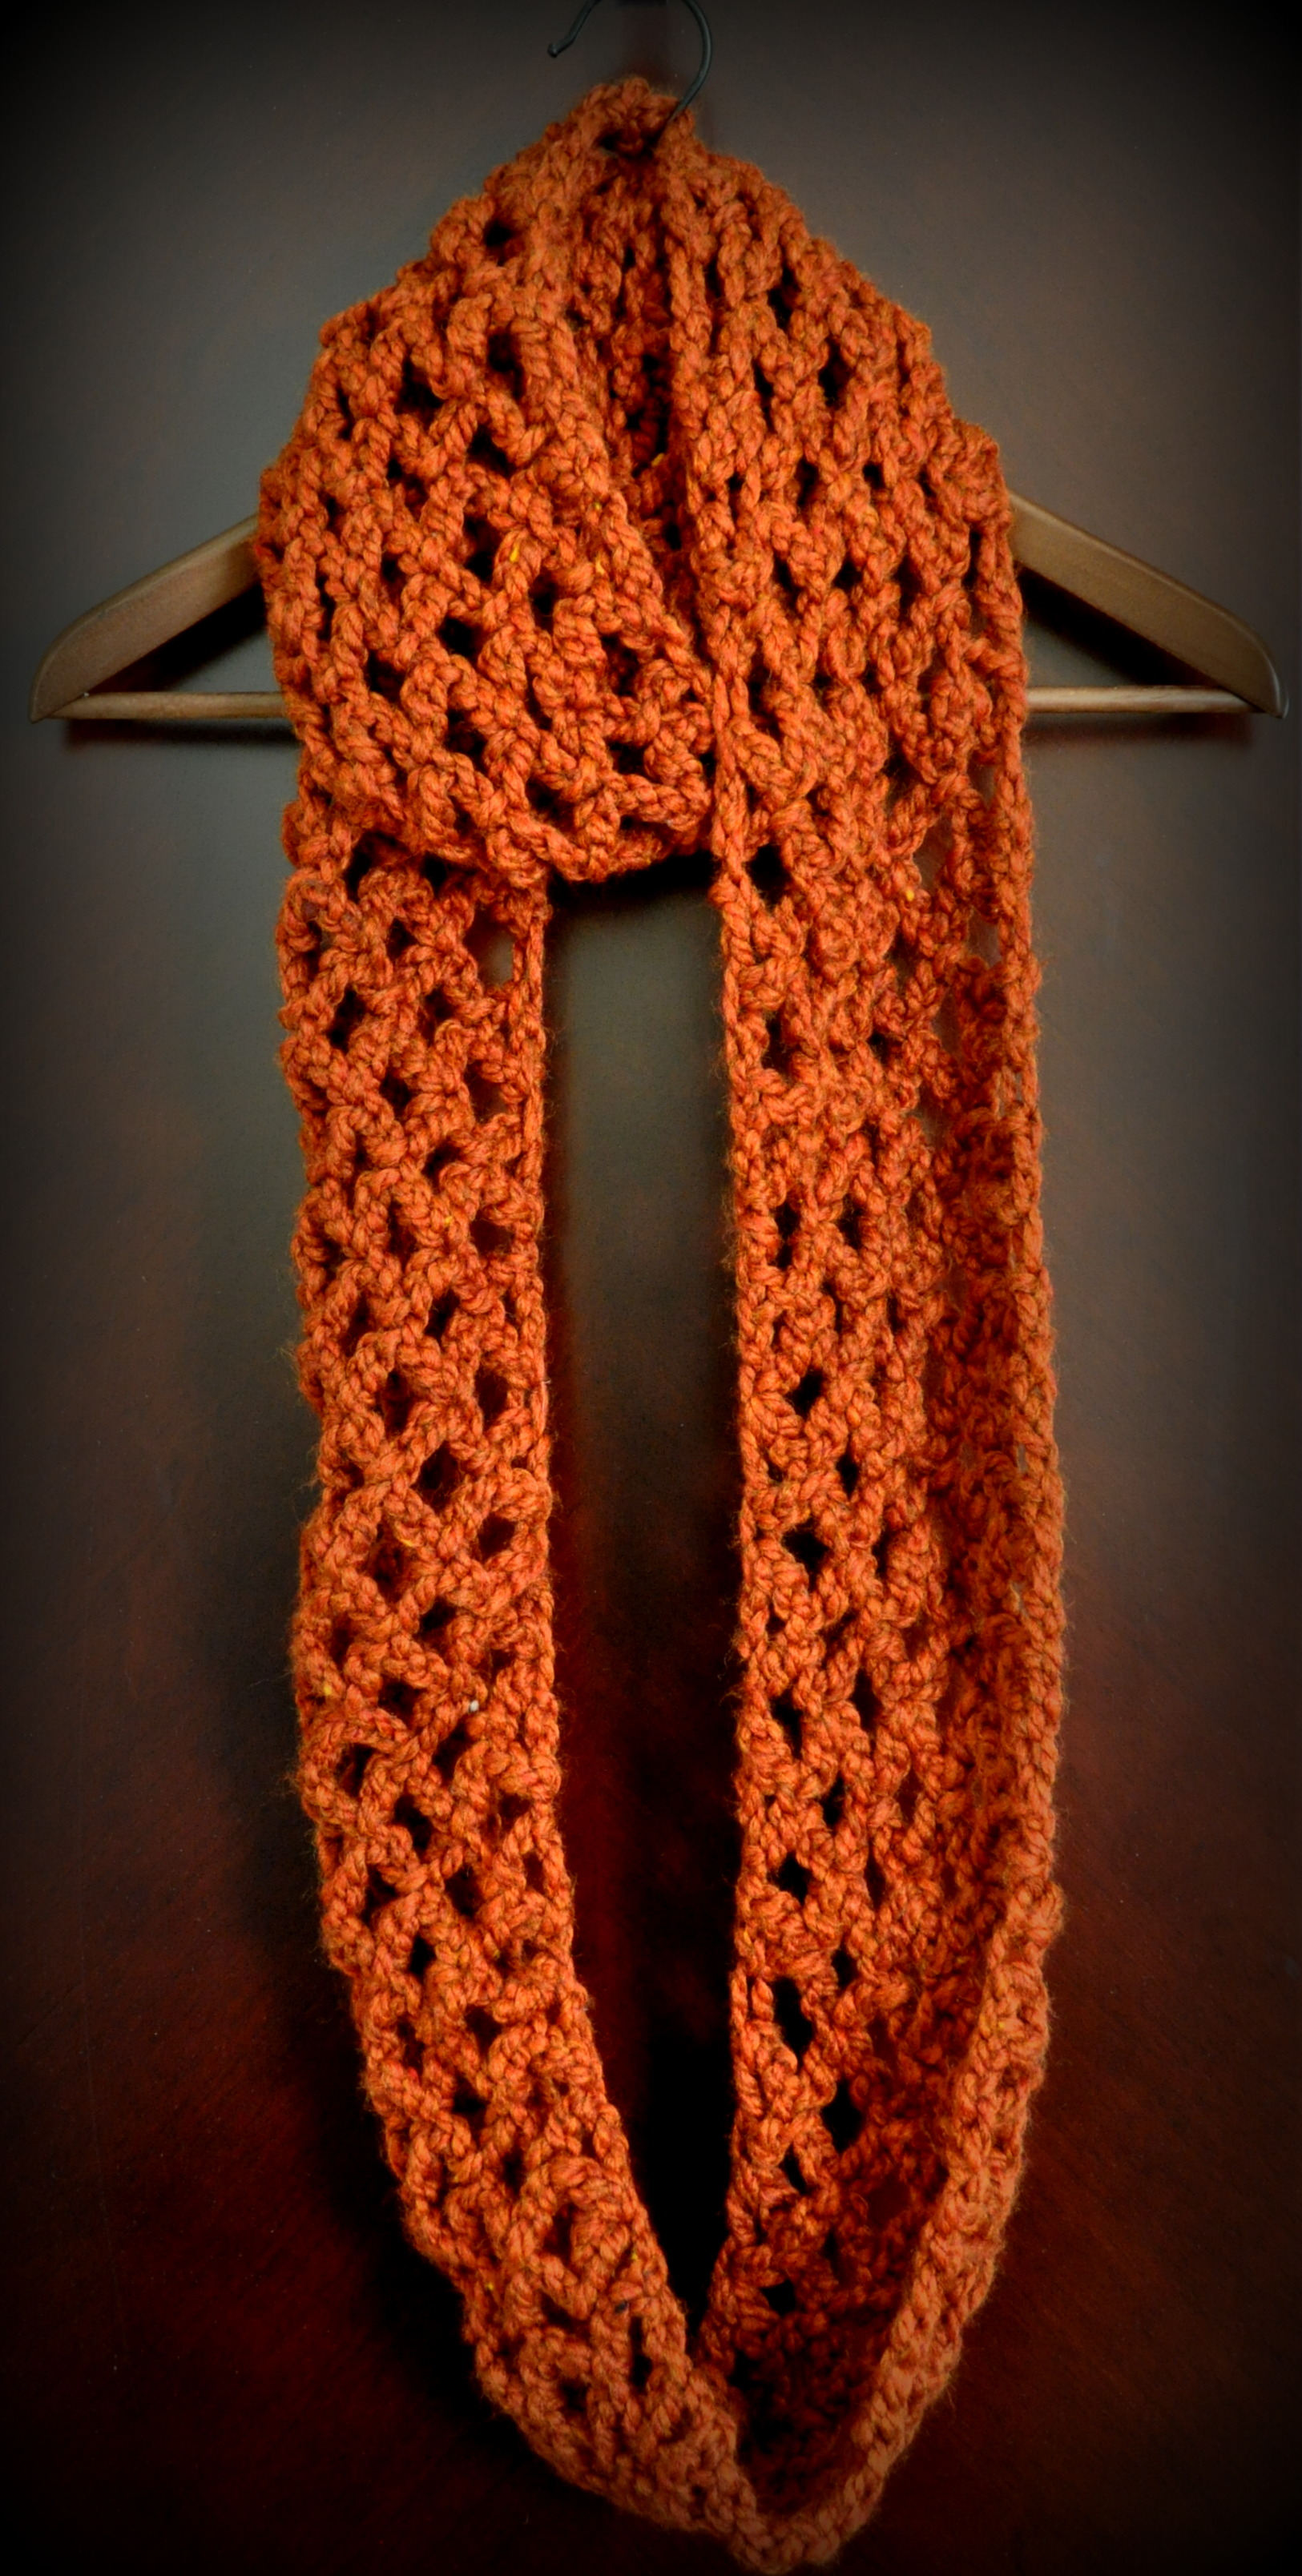 Crochet Scarf Pattern Easy Quick : Free Pattern: Diamond Lattice Chain Crochet Infinity Scarf ...